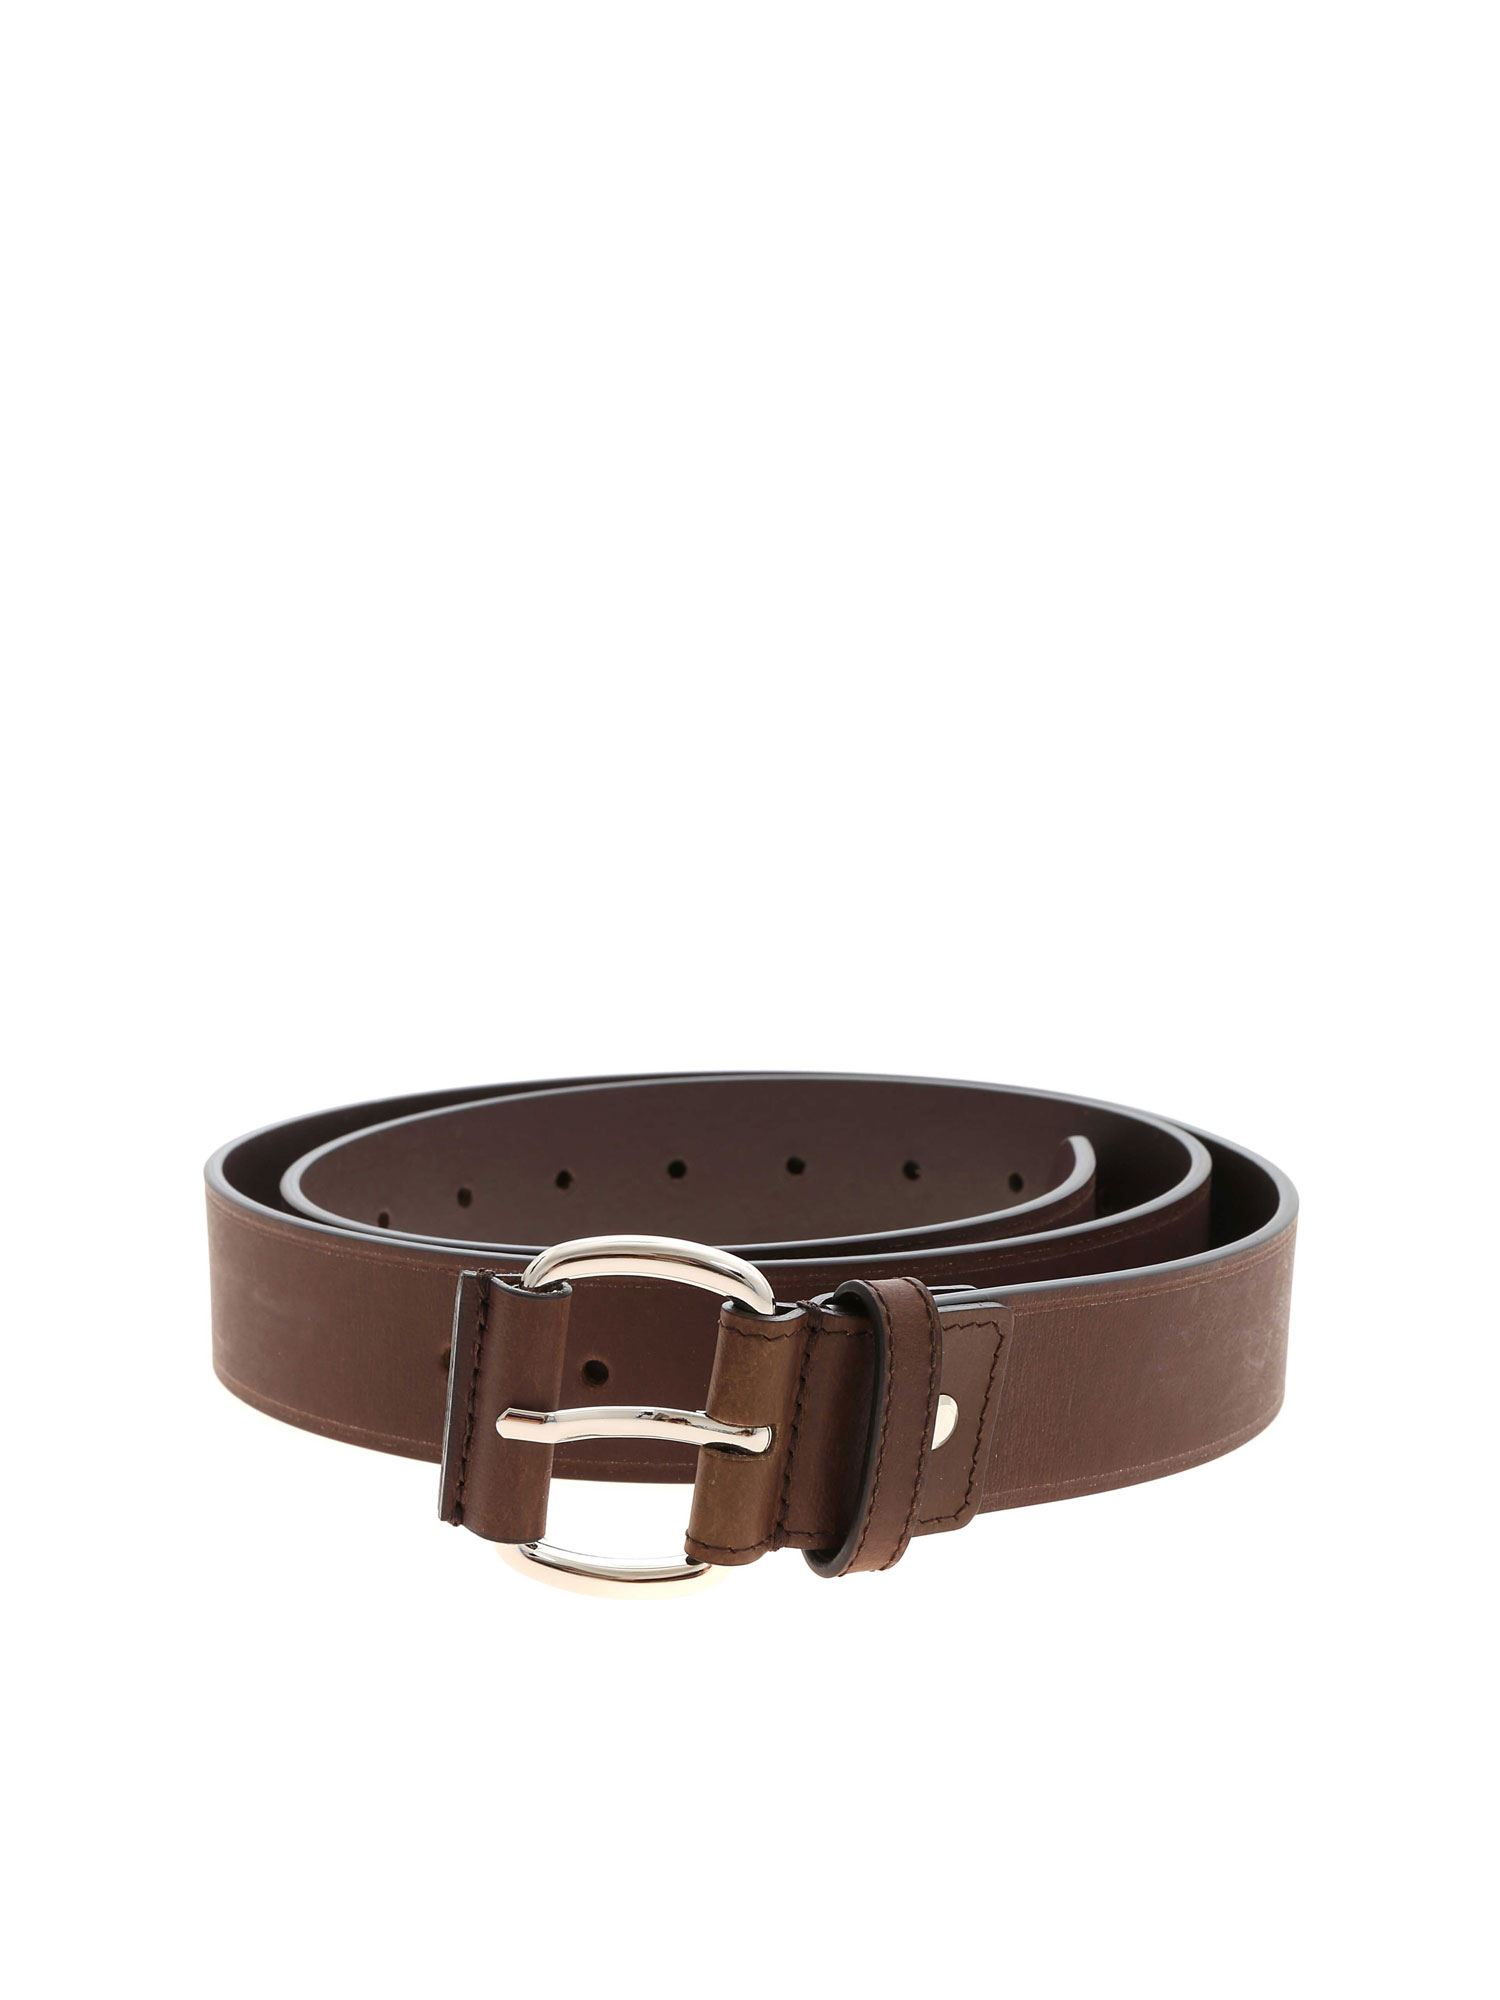 Vivienne Westwood ROLLER BELT IN BROWN